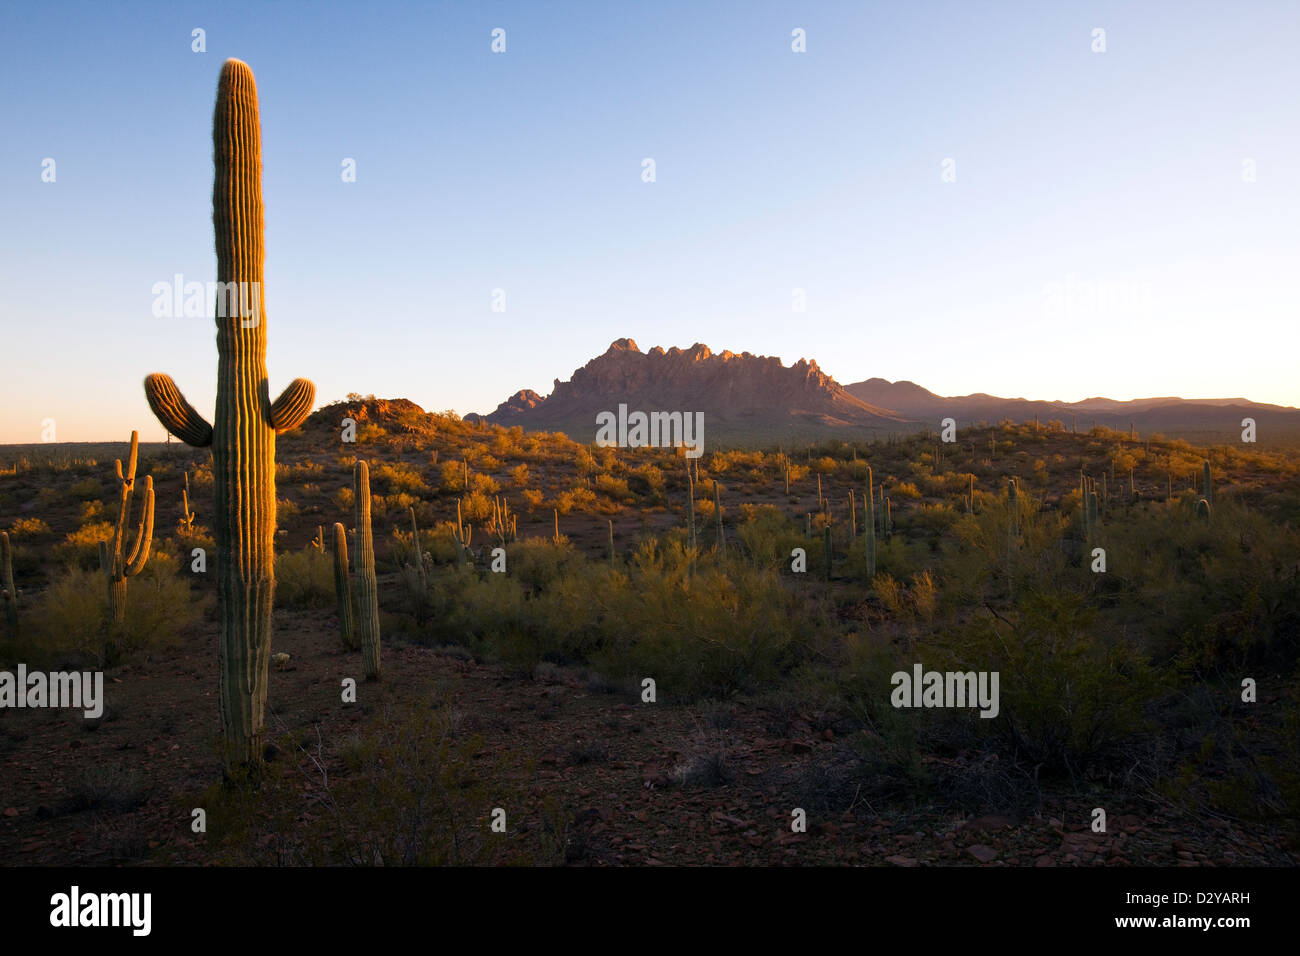 Ironwood National Monument, Ragged Top Mountain in the distance, Arizona - Stock Image